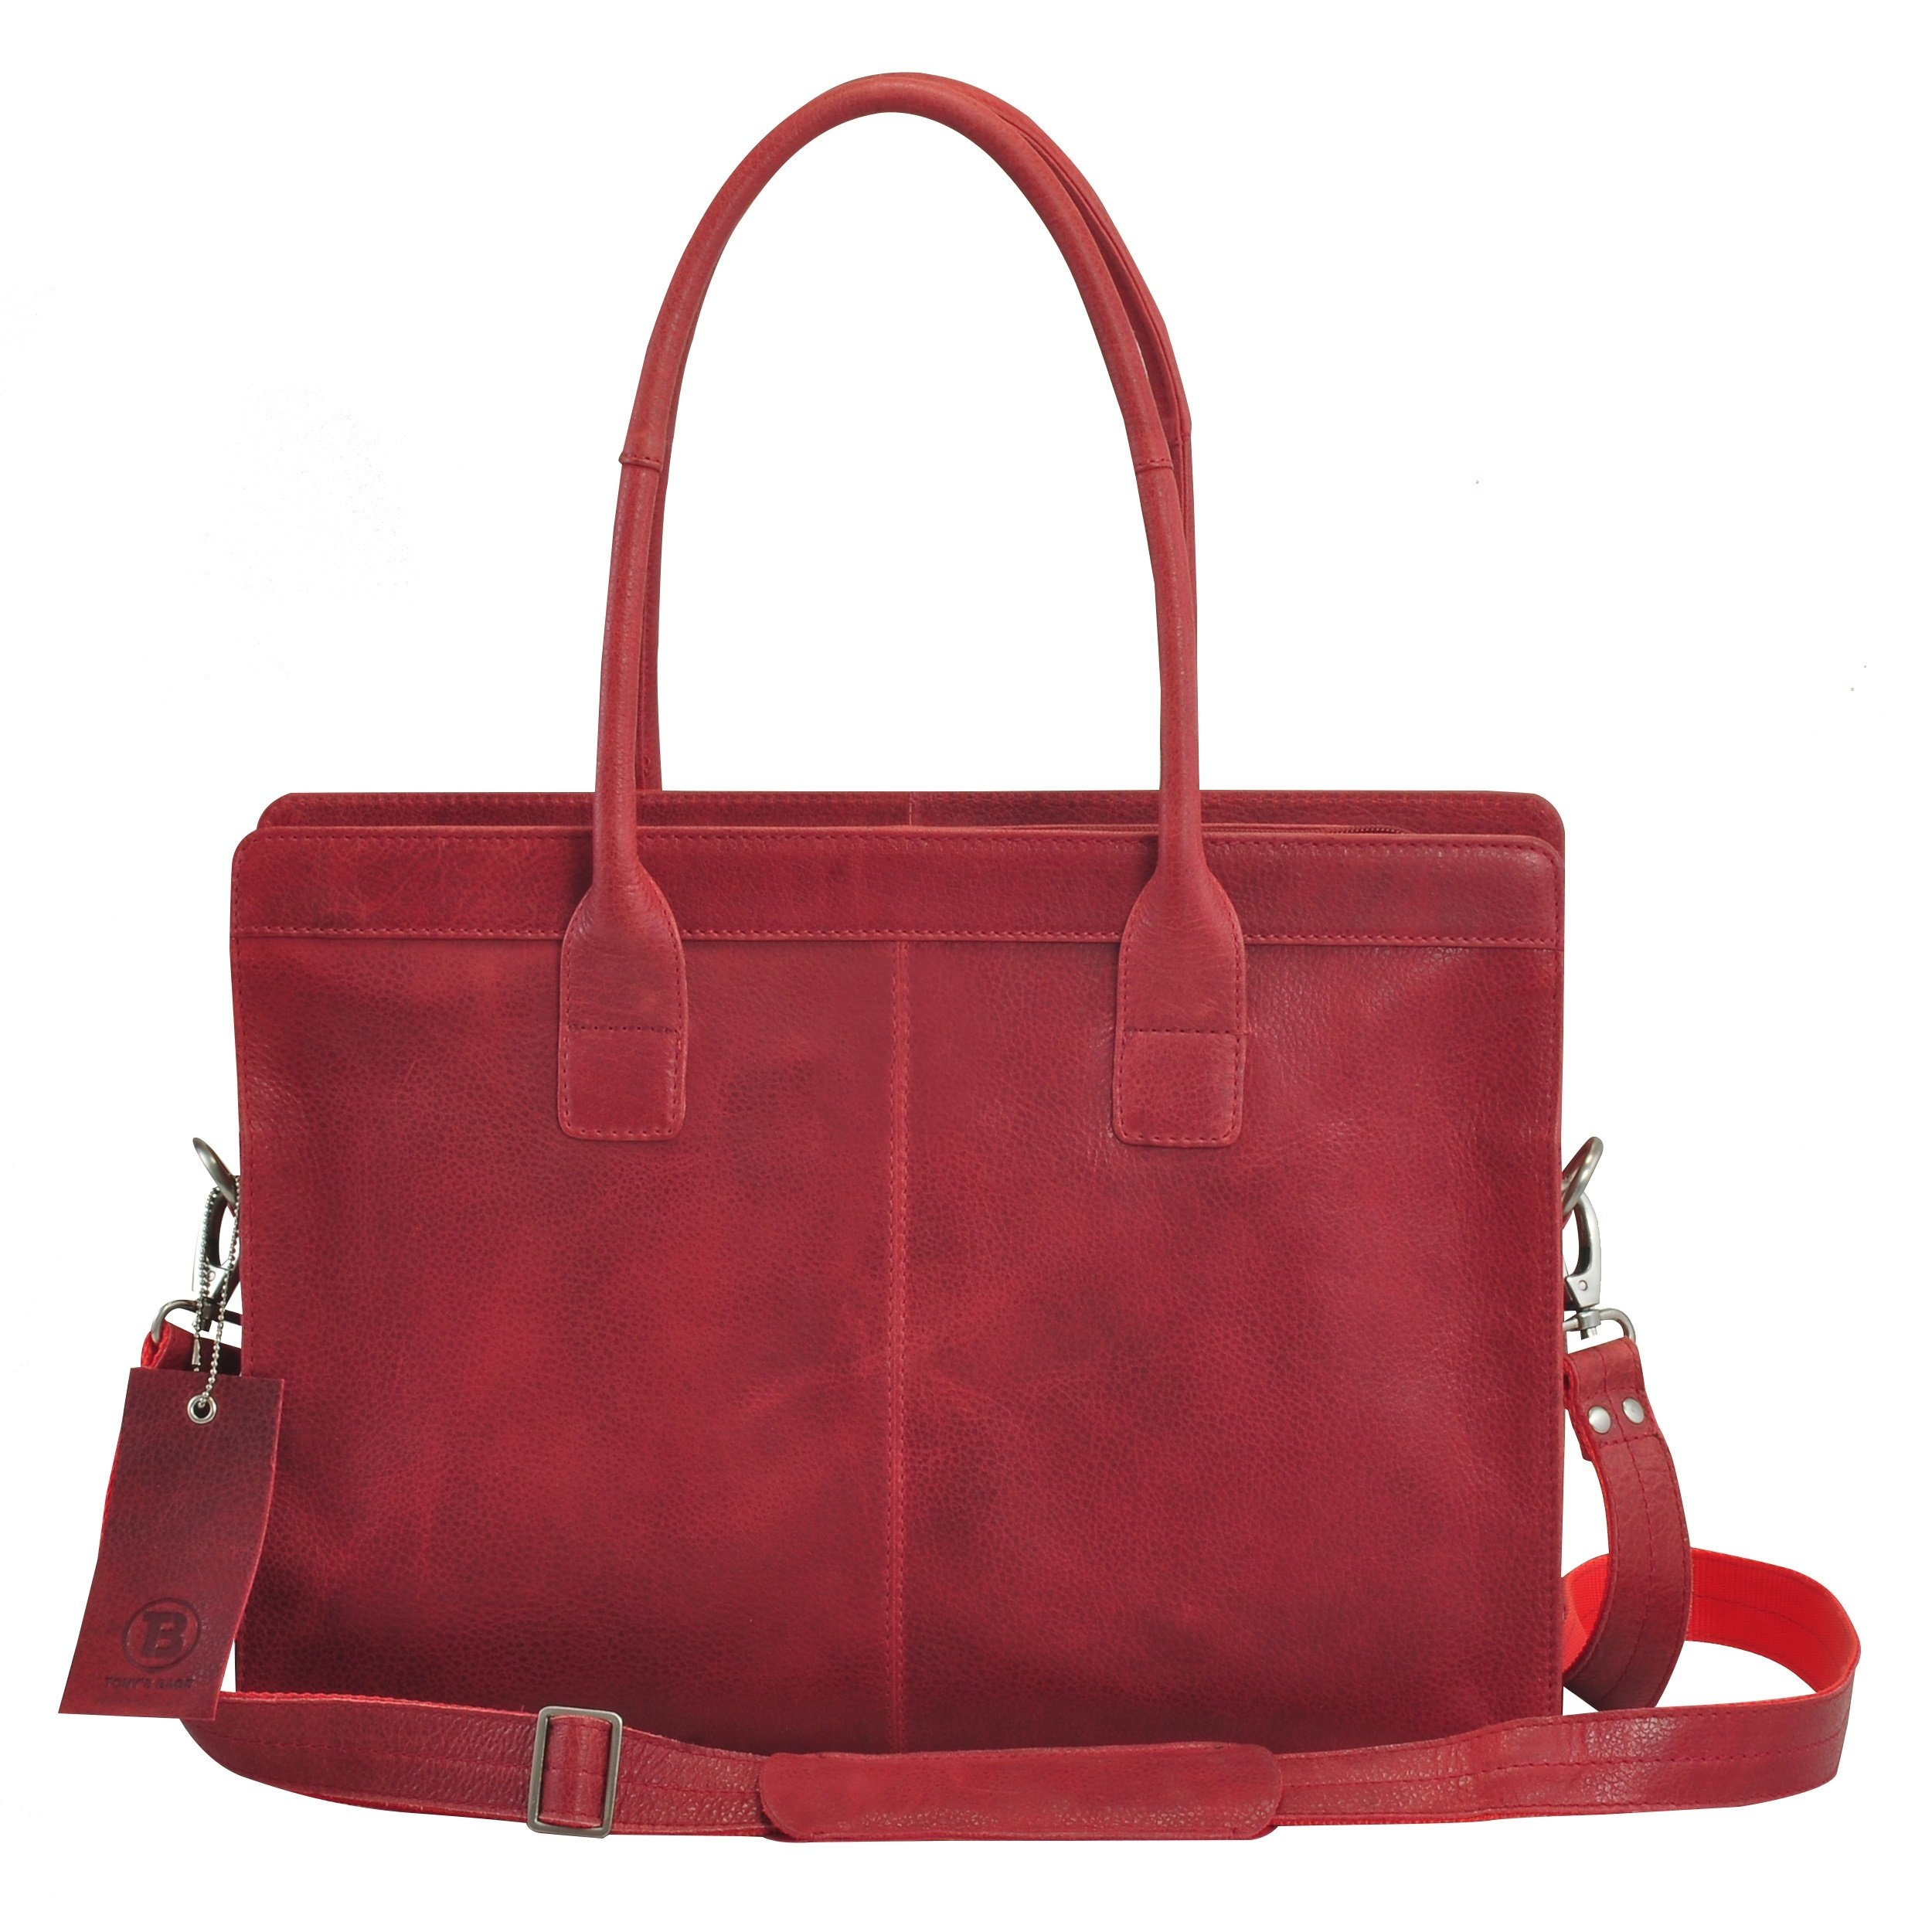 Tony's Over-Sized Laptop Bag - Vintage Crunch Leather - Ladies Helena Bags